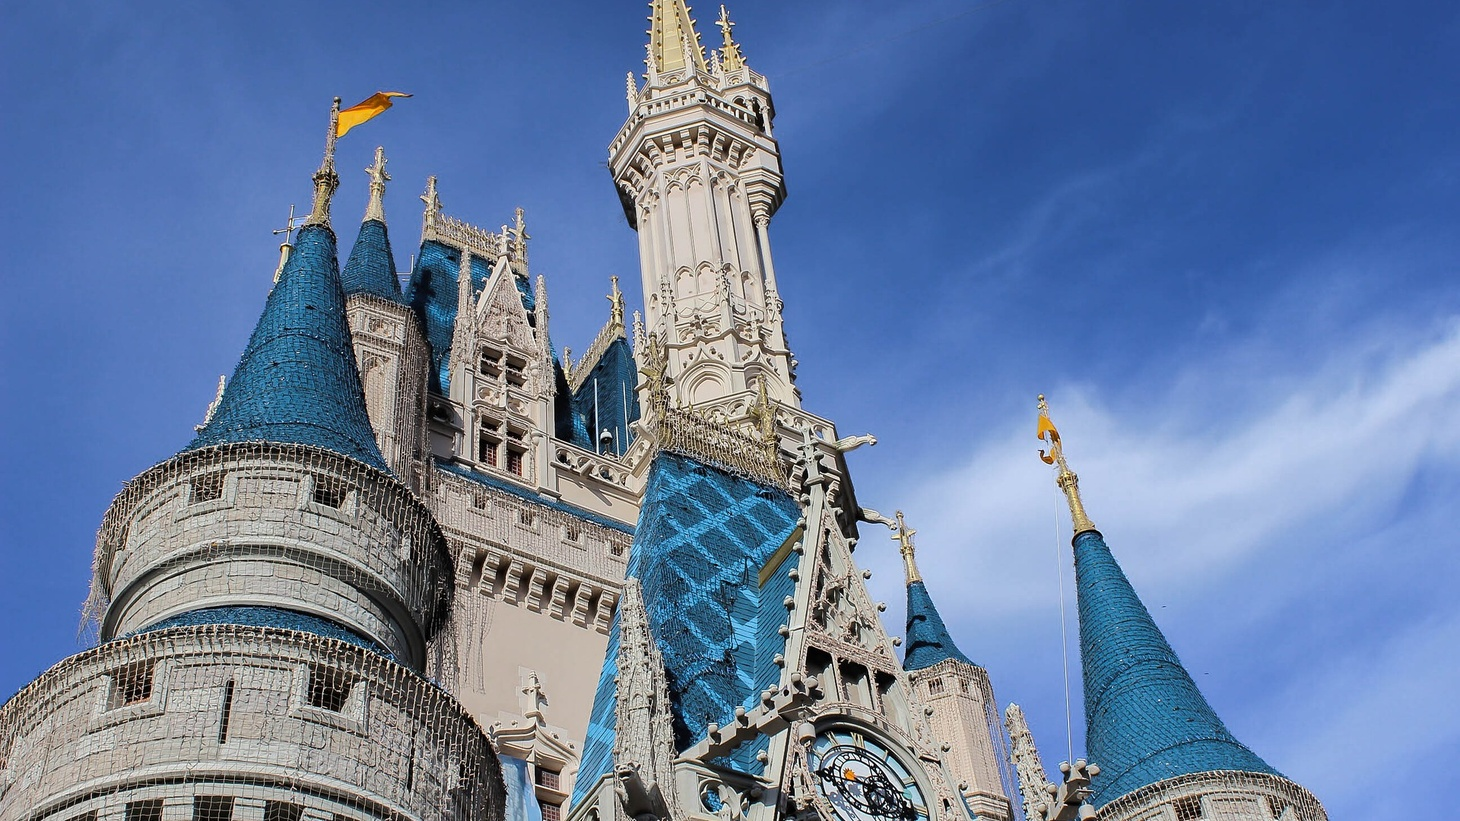 Disney announced plans to reopen its Florida theme park in July, but will the Magic Kingdom still be magical with guests and employees wearing masks?